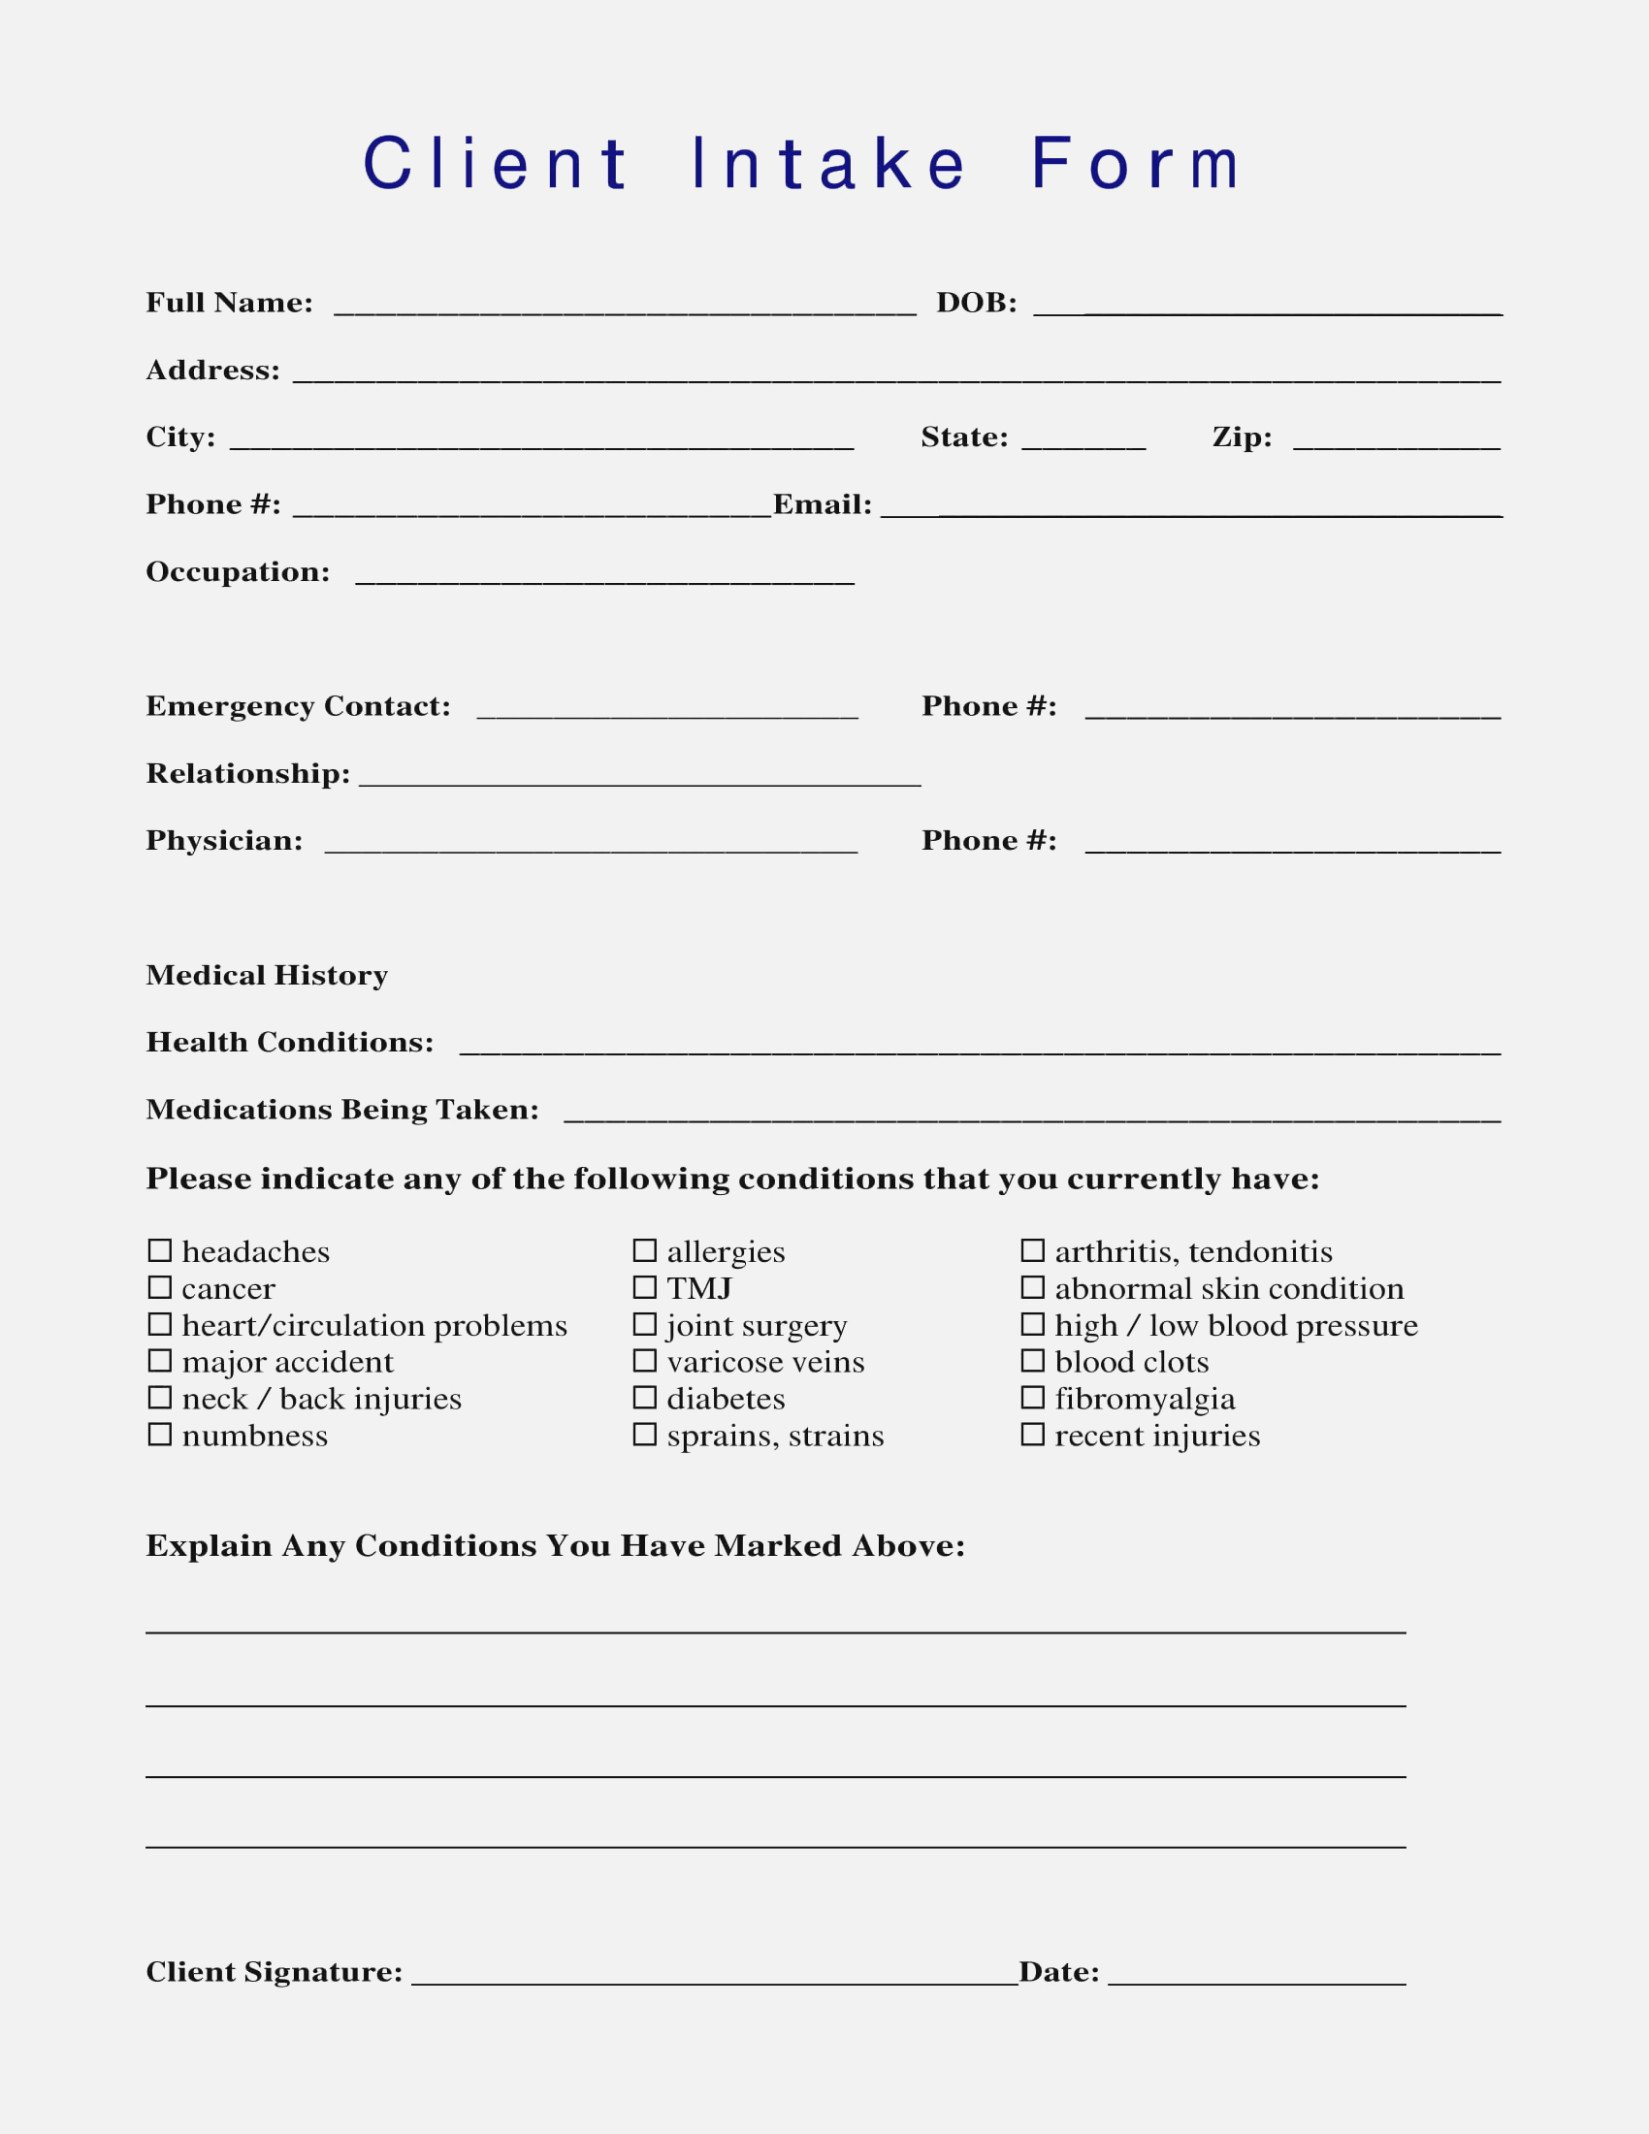 Client Intake form Template the Real Reason Behind